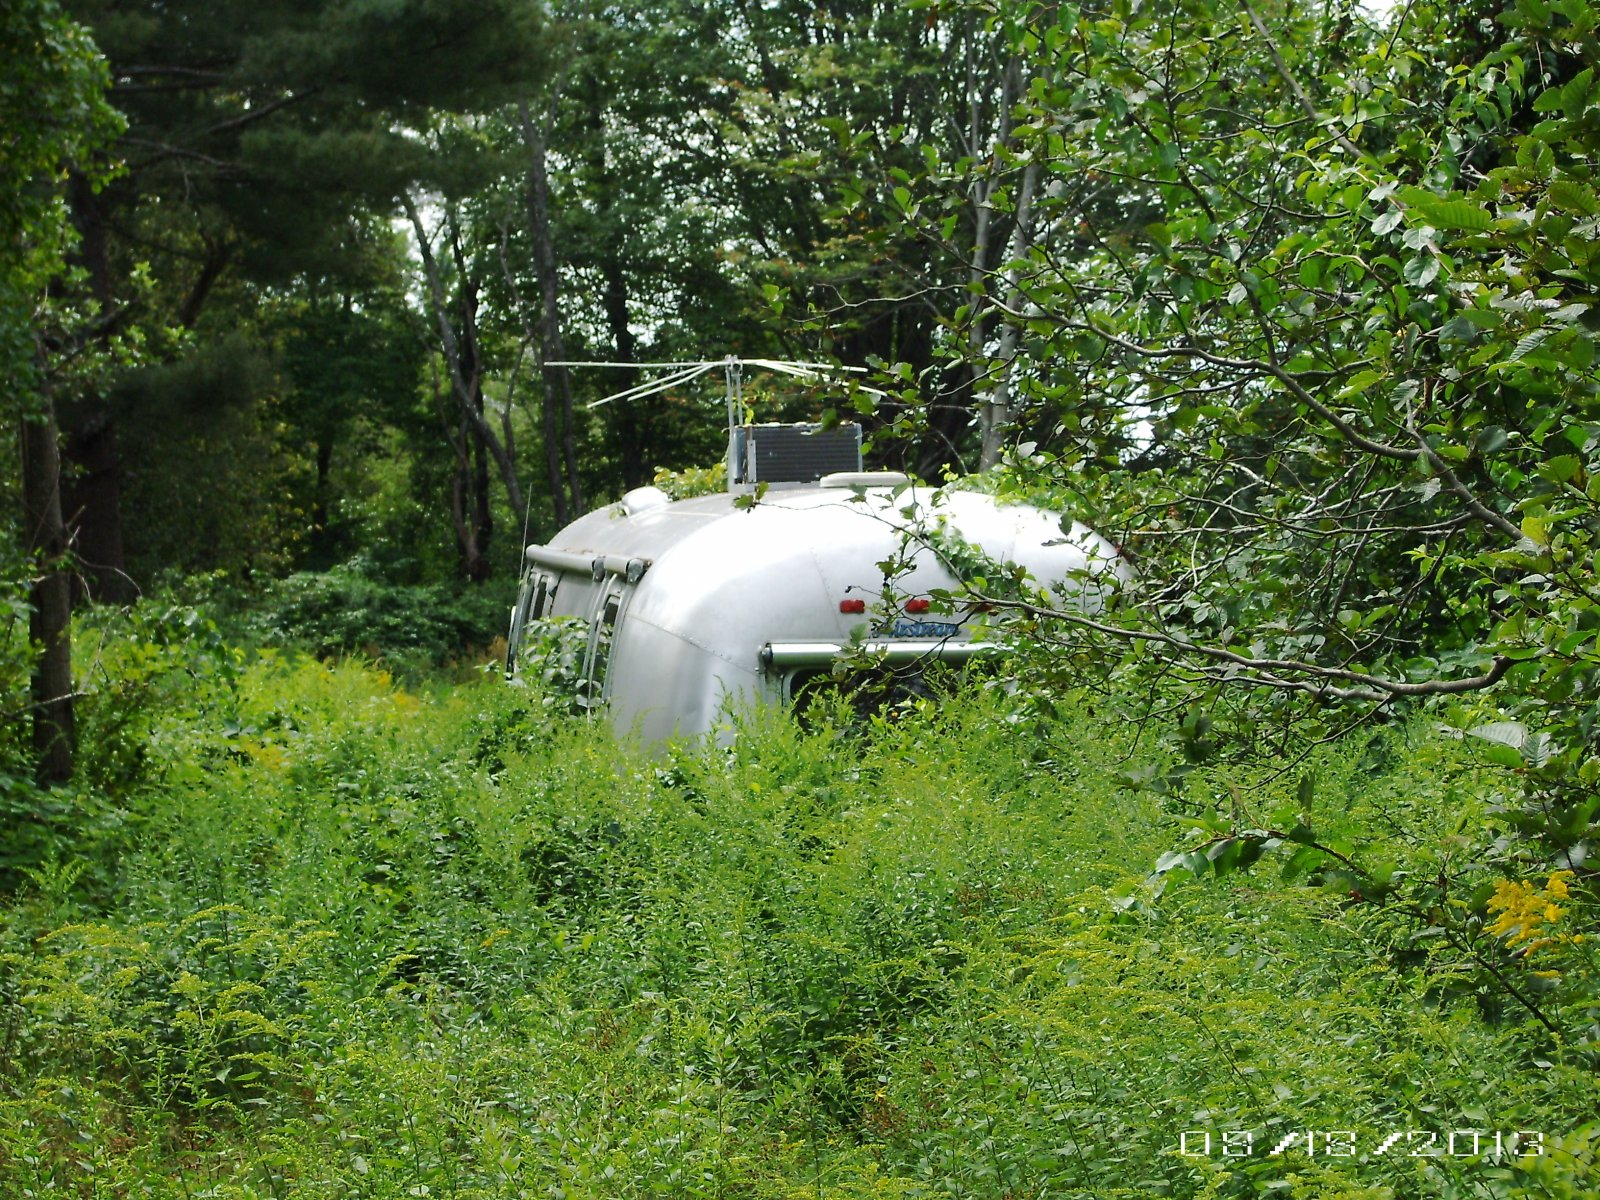 Click image for larger version  Name:Airstream in the weeds 001.jpg Views:58 Size:684.5 KB ID:193742